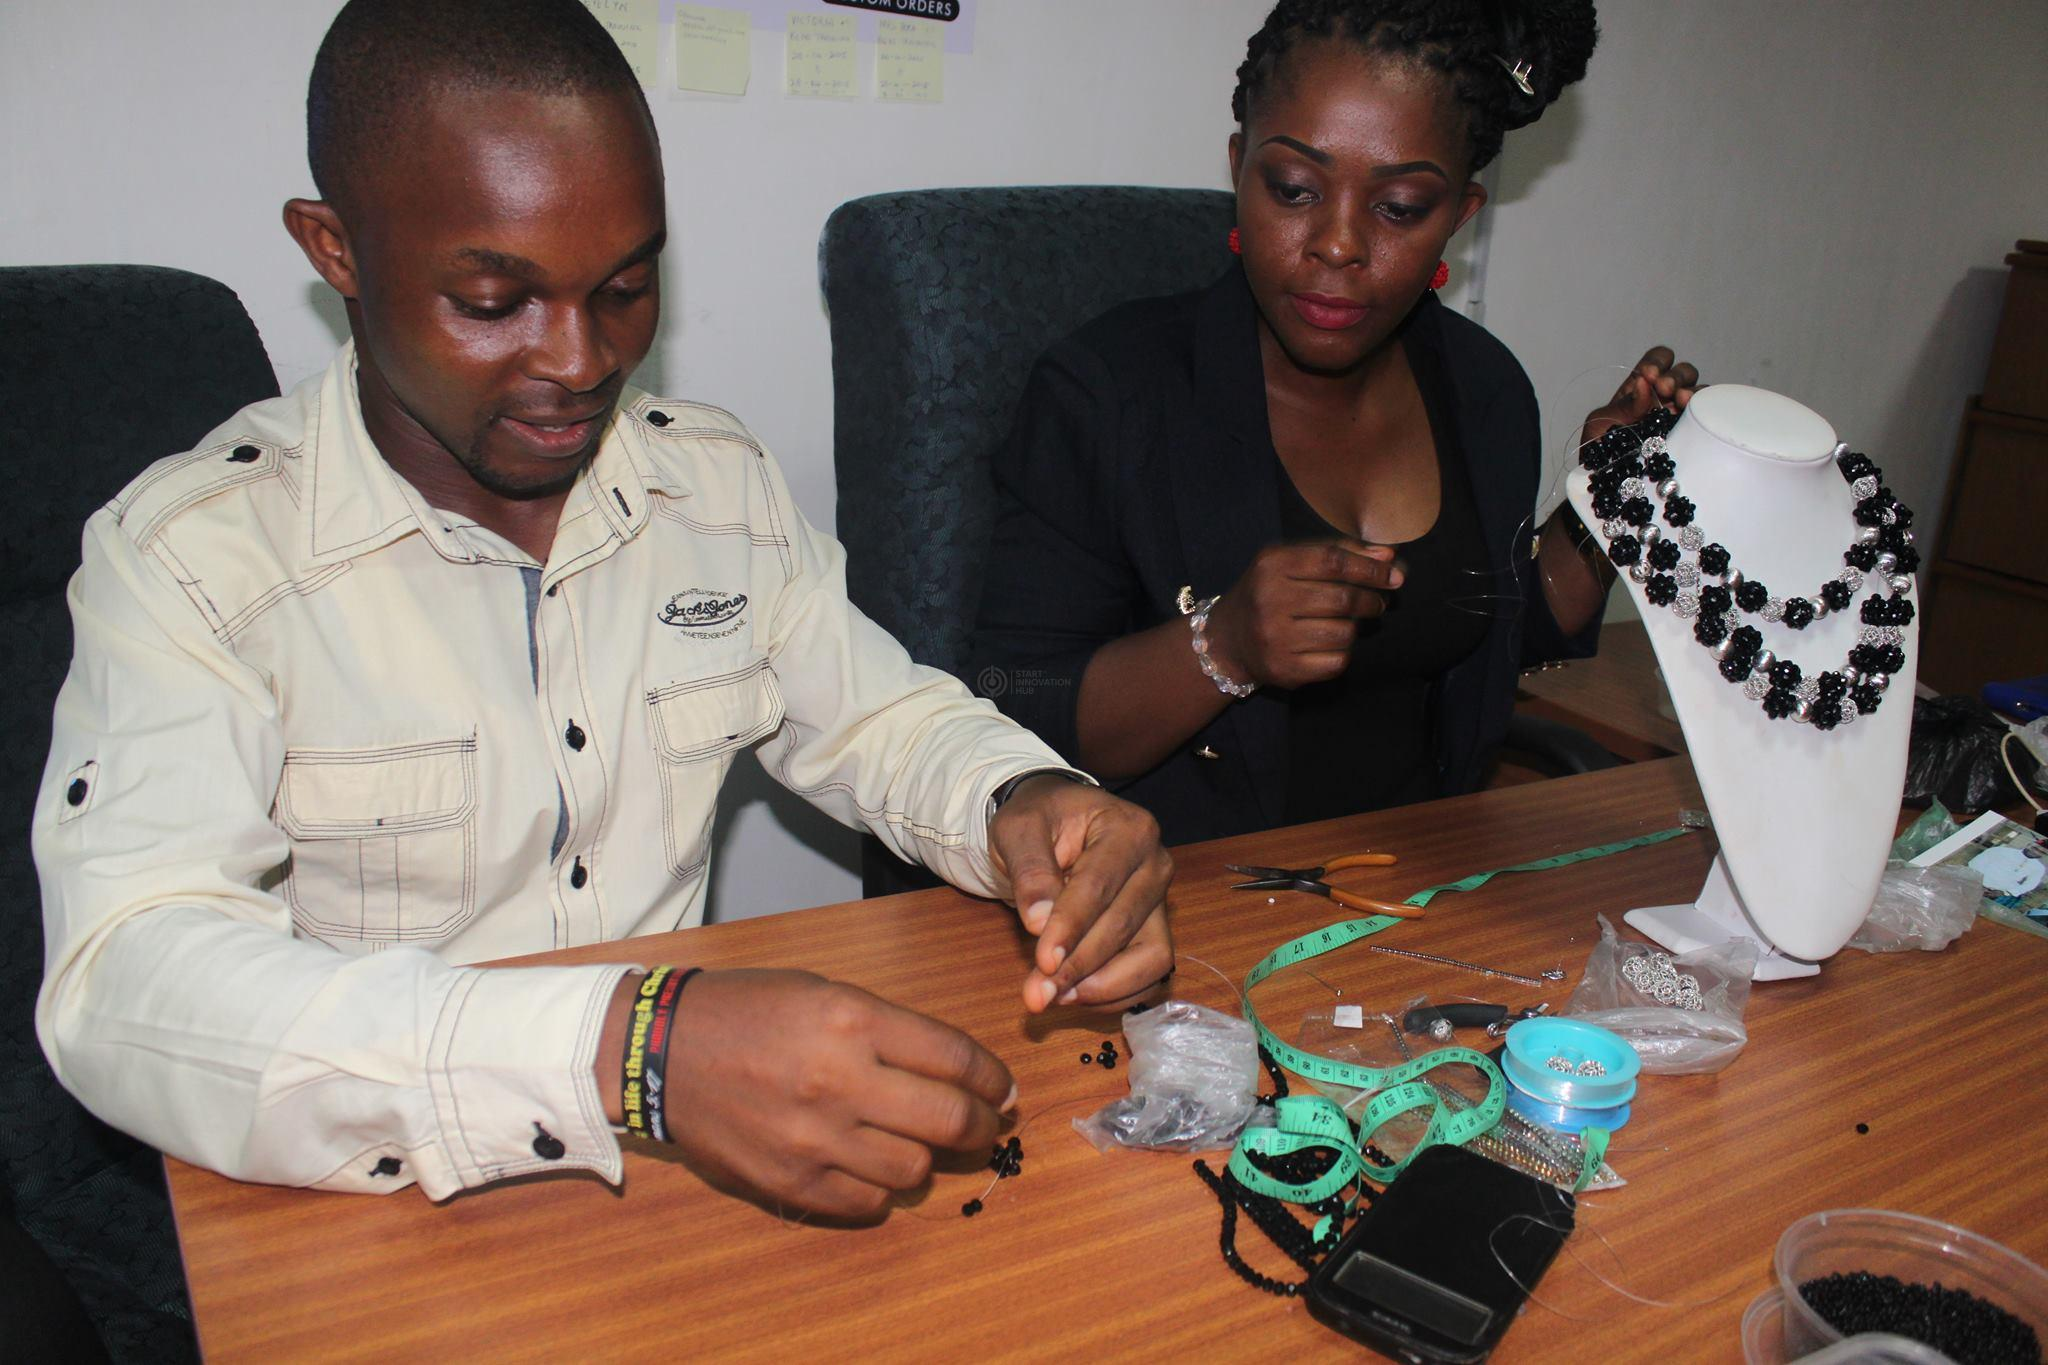 Dache Pearls Tutoring Start Hub CEO on Bead making